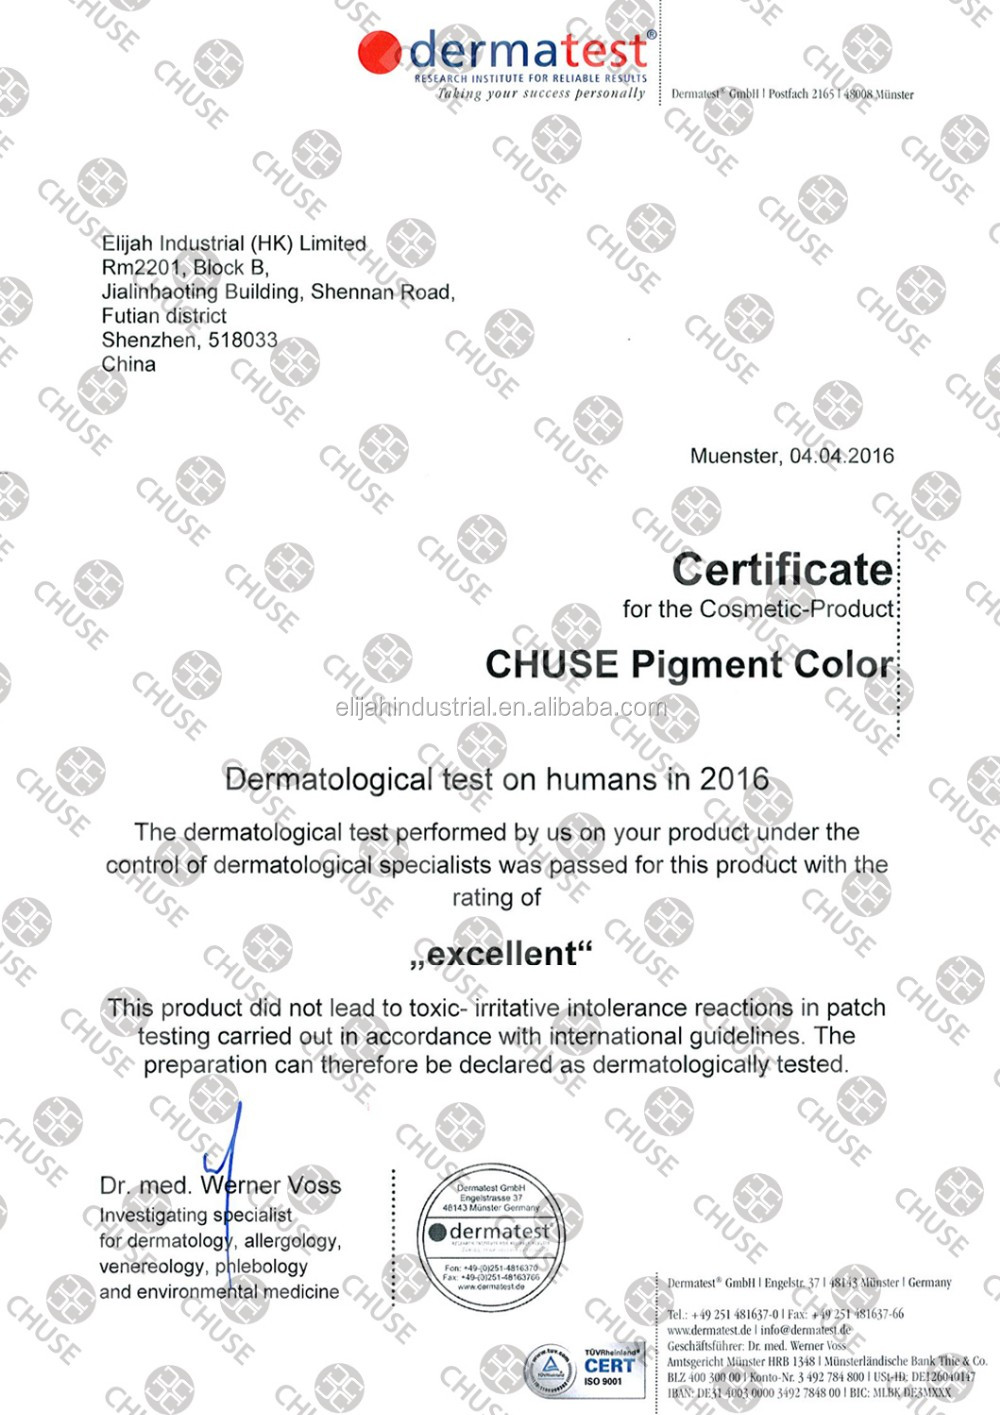 CHUSE C148 Jet Black Permanent Makeup Pigmentation Tattoo Ink